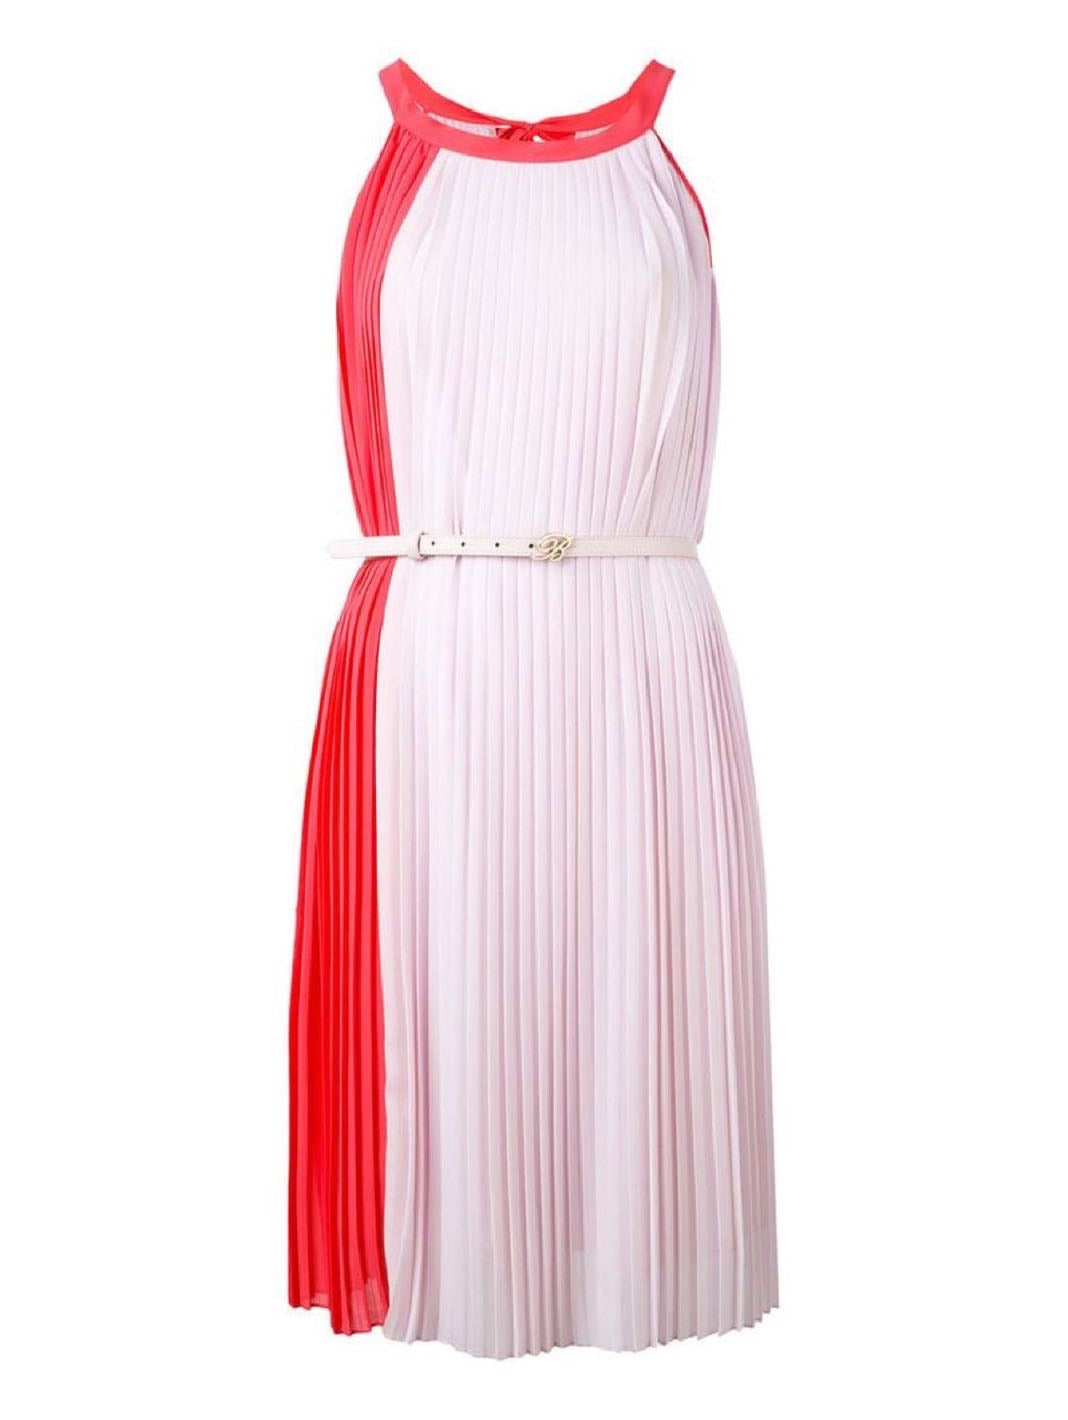 Pleated Dress - The Bobby Boga